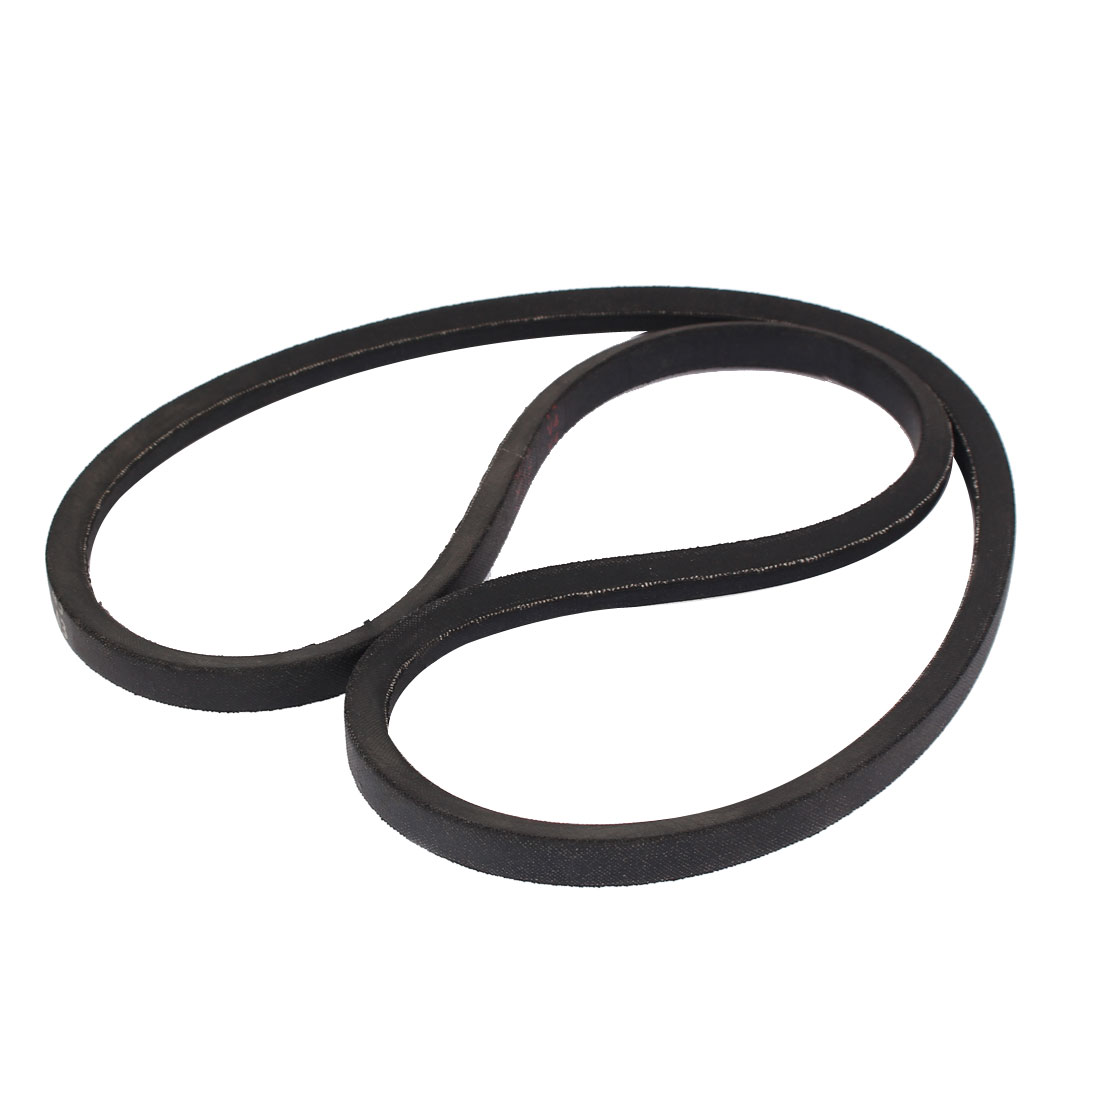 "A43 Yard Machine Lawn Mower Tractor Drive Belt V-Belt 43"" x 1/2"" Black"